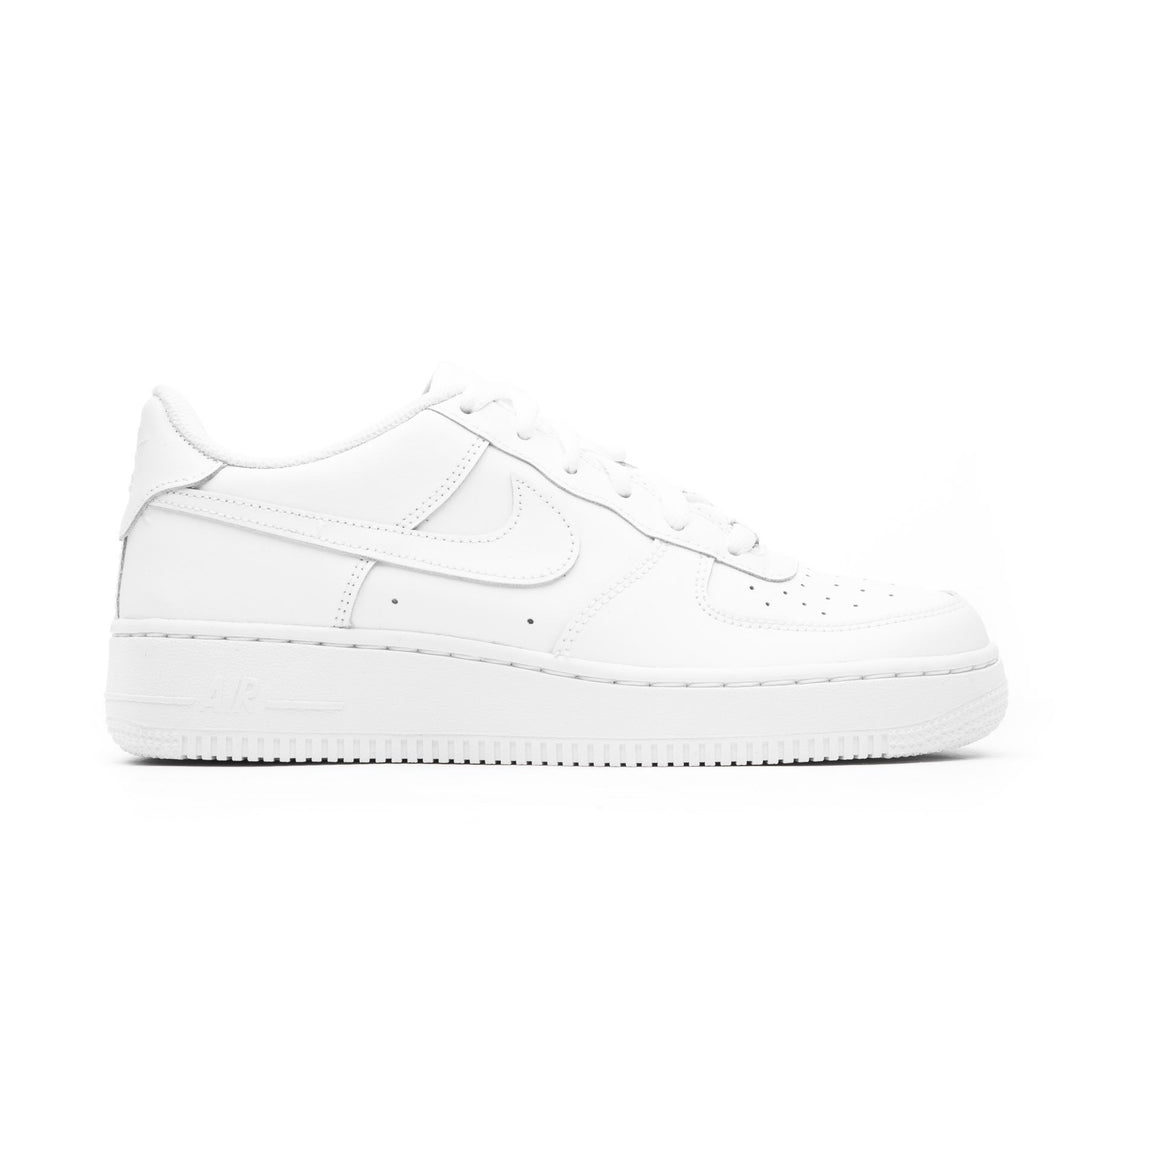 NIKE AIR FORCE 1 BG 314192117